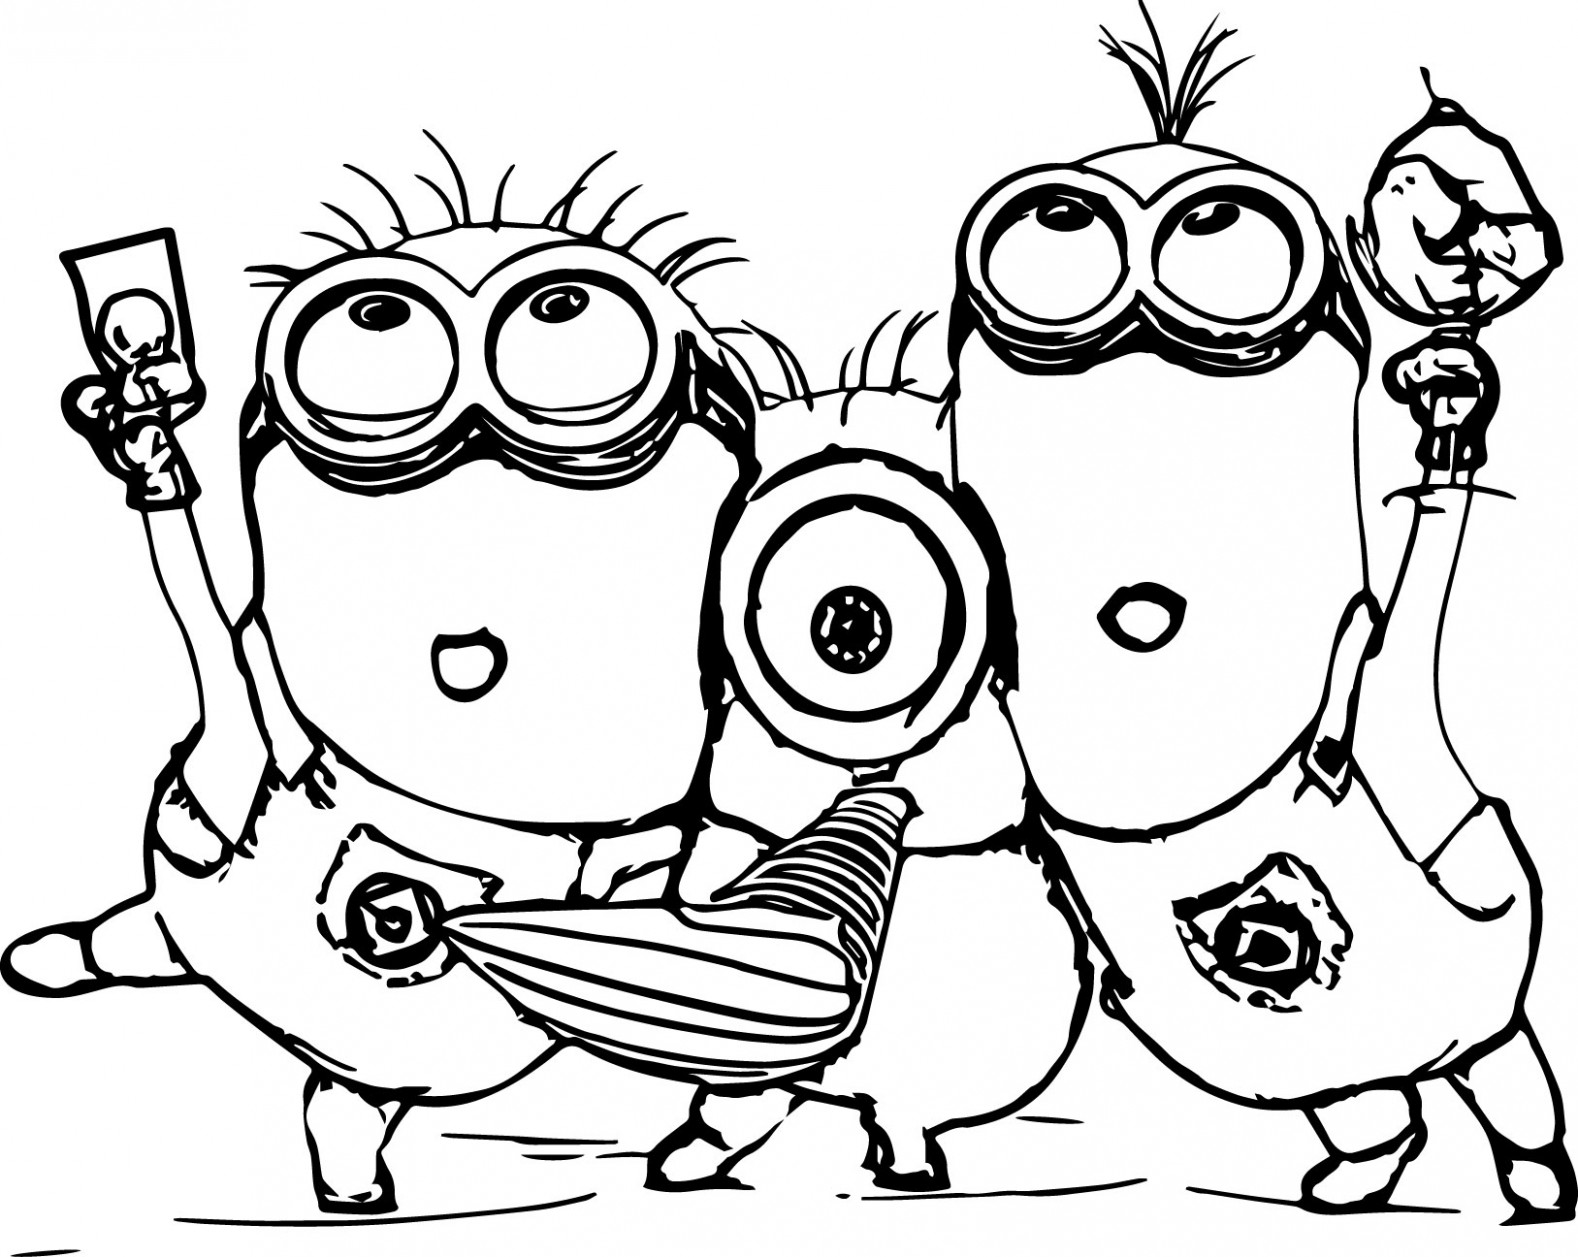 Minion Coloring Pages - Dr. Odd